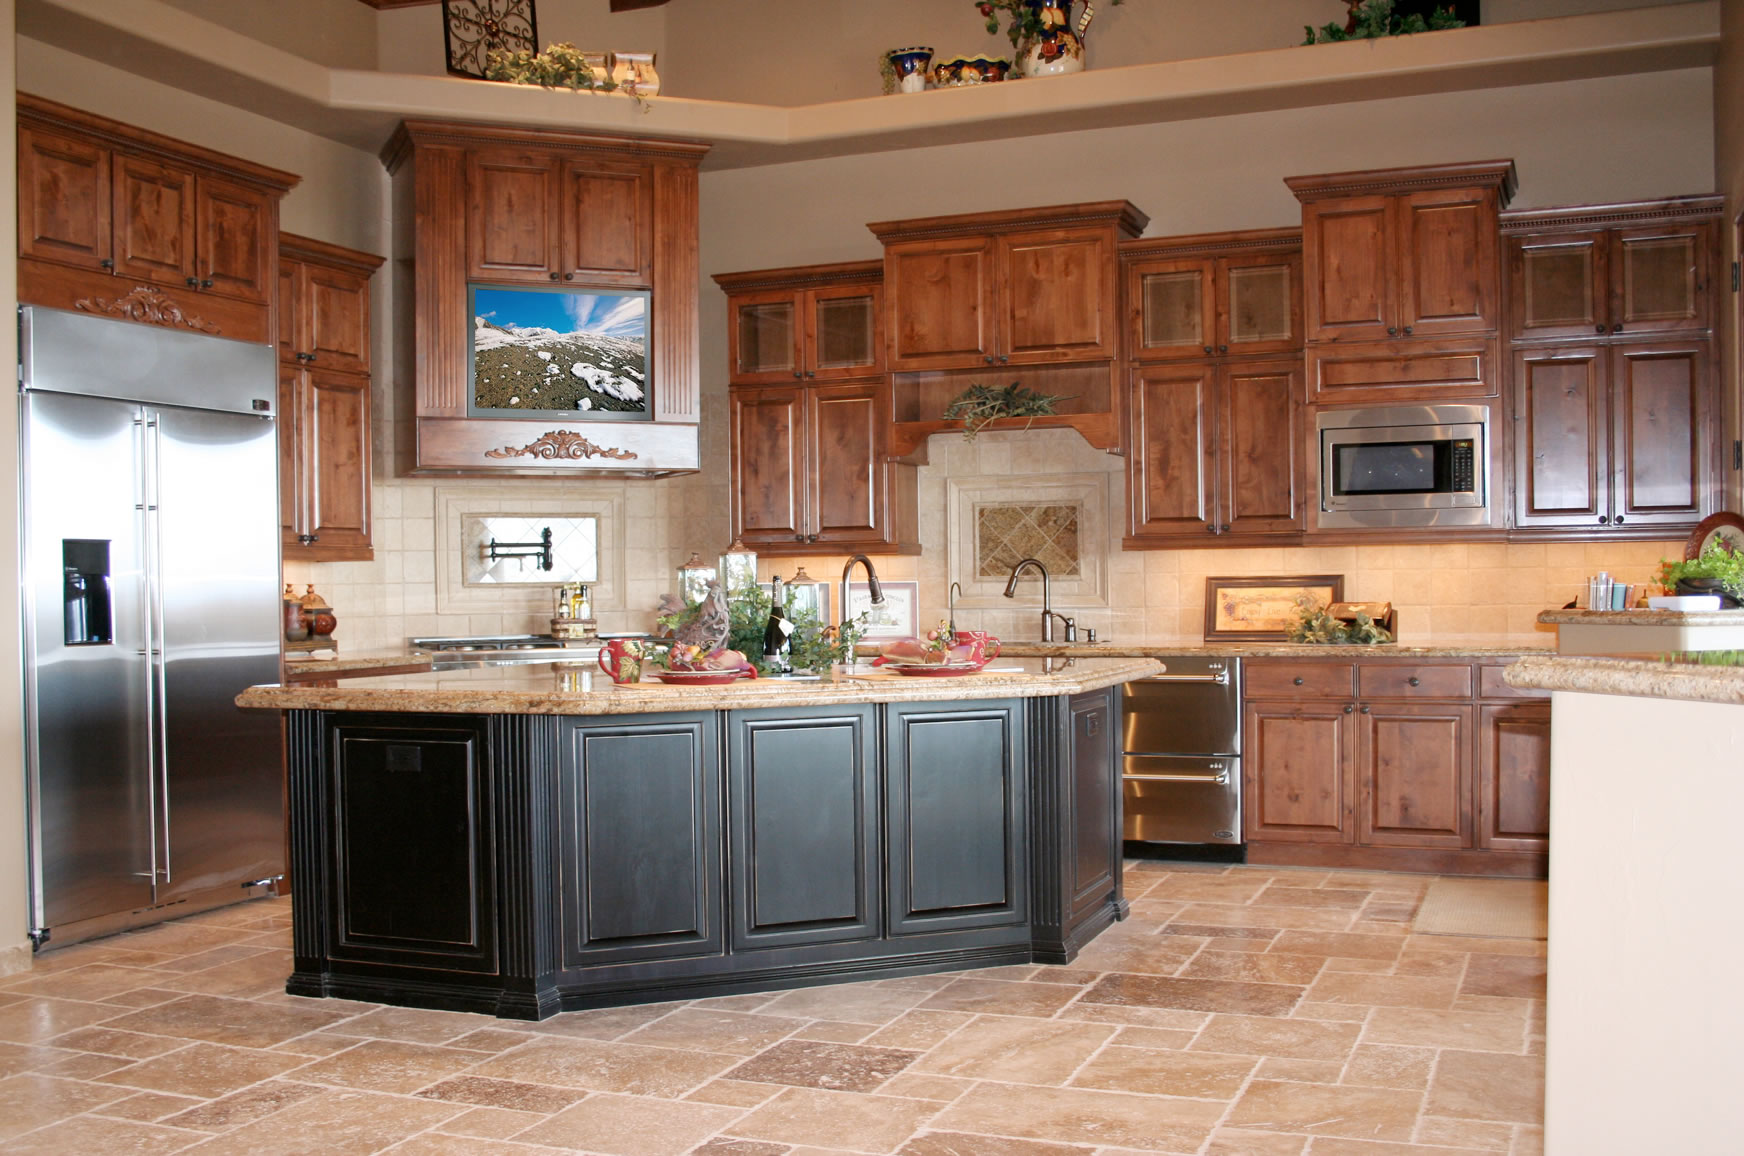 Kitchen image kitchen bathroom design center for Kitchen cabinets ideas images